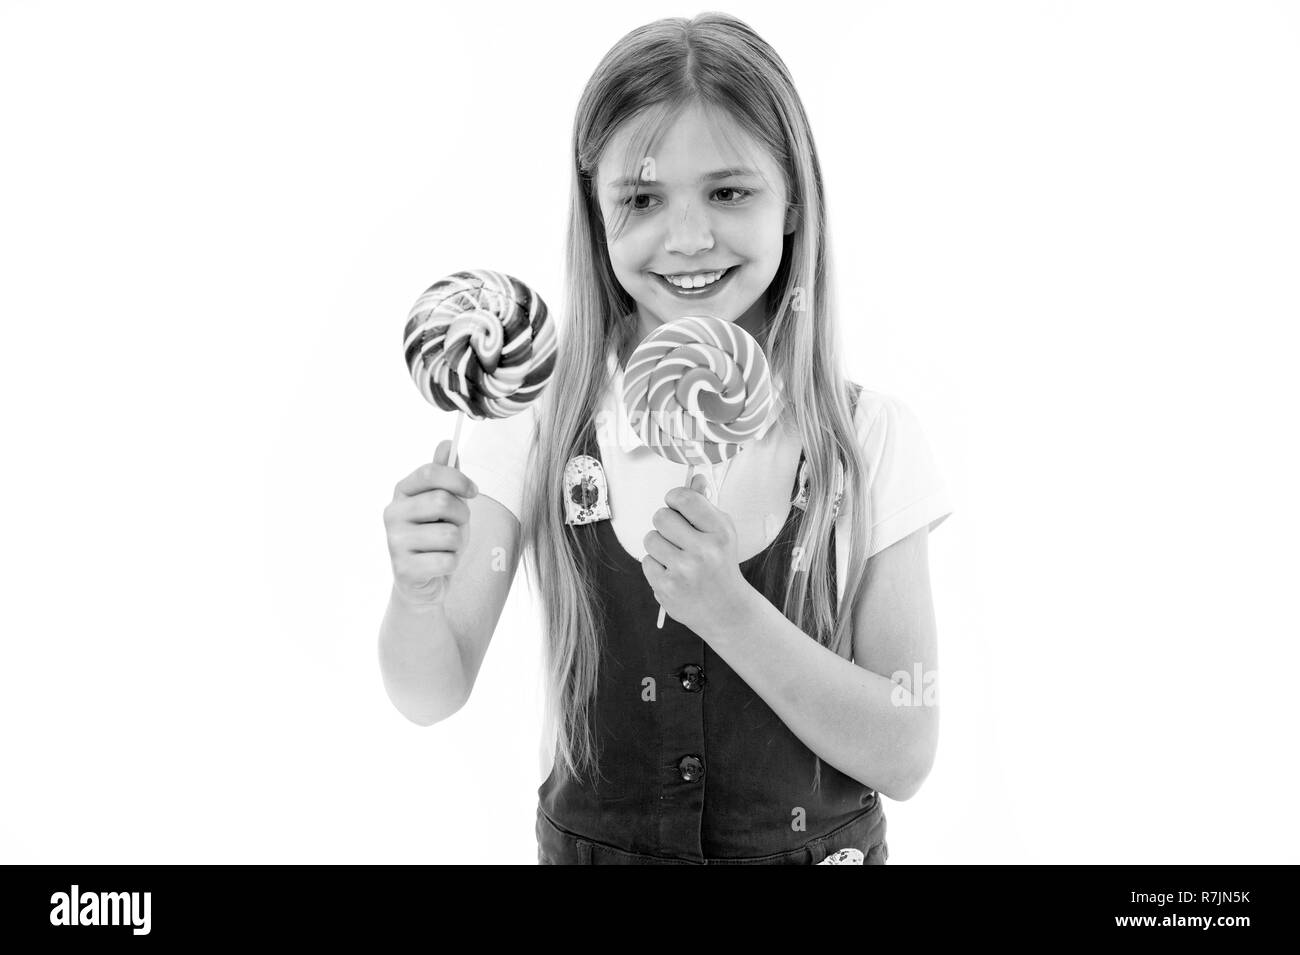 Hard choice. Cheerful little girl holding lollipops in her hands and smiling while standing isolated on white. Girl can not decide which lollipop she wants. Sweets addicted kid wants all candies. - Stock Image